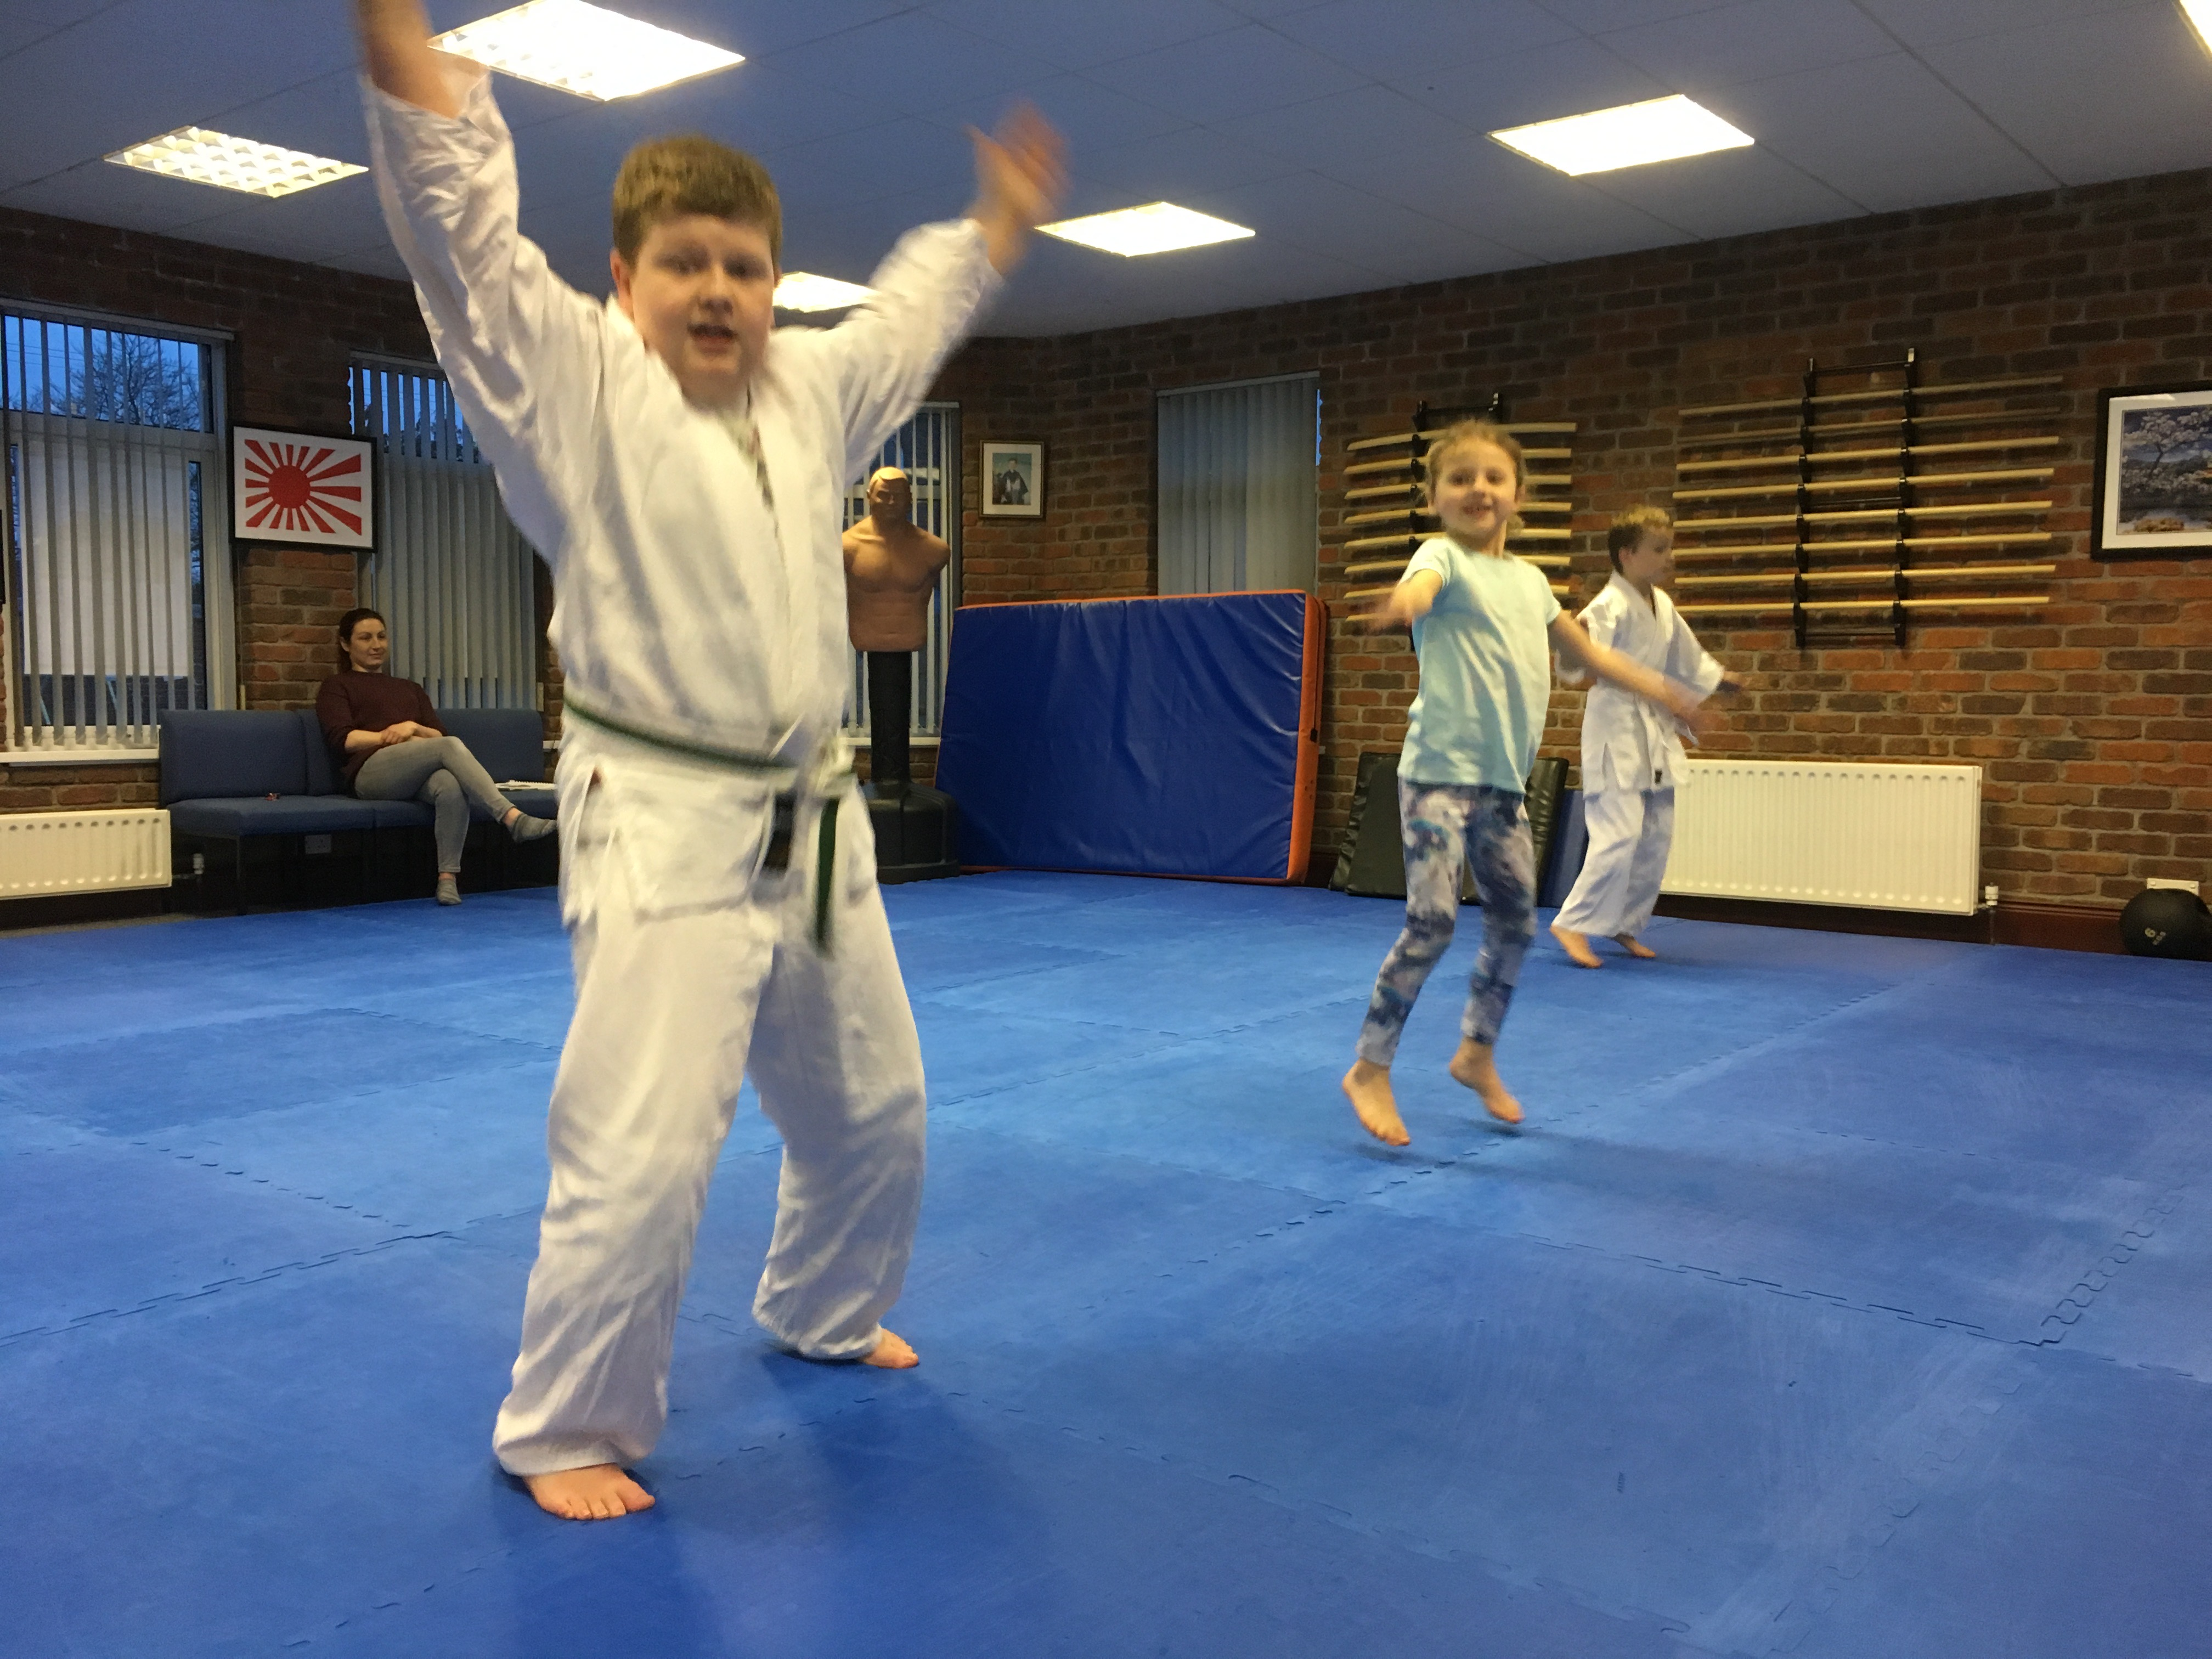 image of children warming up jumping at start of the lessonMartin Acton sensei in his dojo. Martin Acton's Aikido Institute